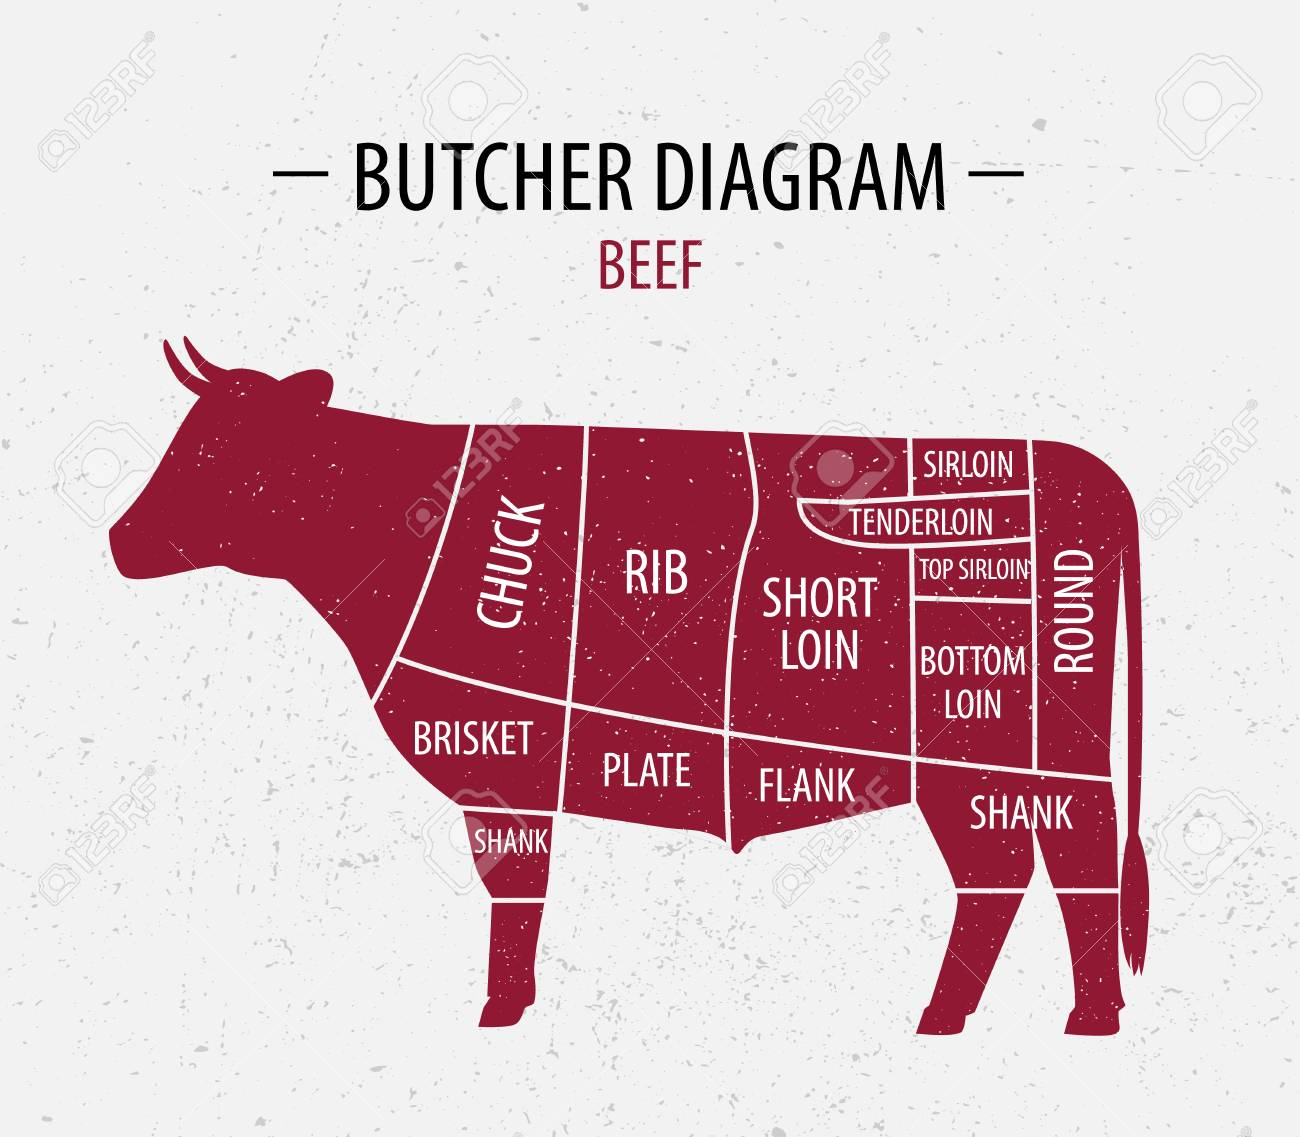 93062487 cut of beef poster butcher diagram for groceries meat stores butcher shop farmer market poster for m cut of beef poster butcher diagram for groceries, meat stores